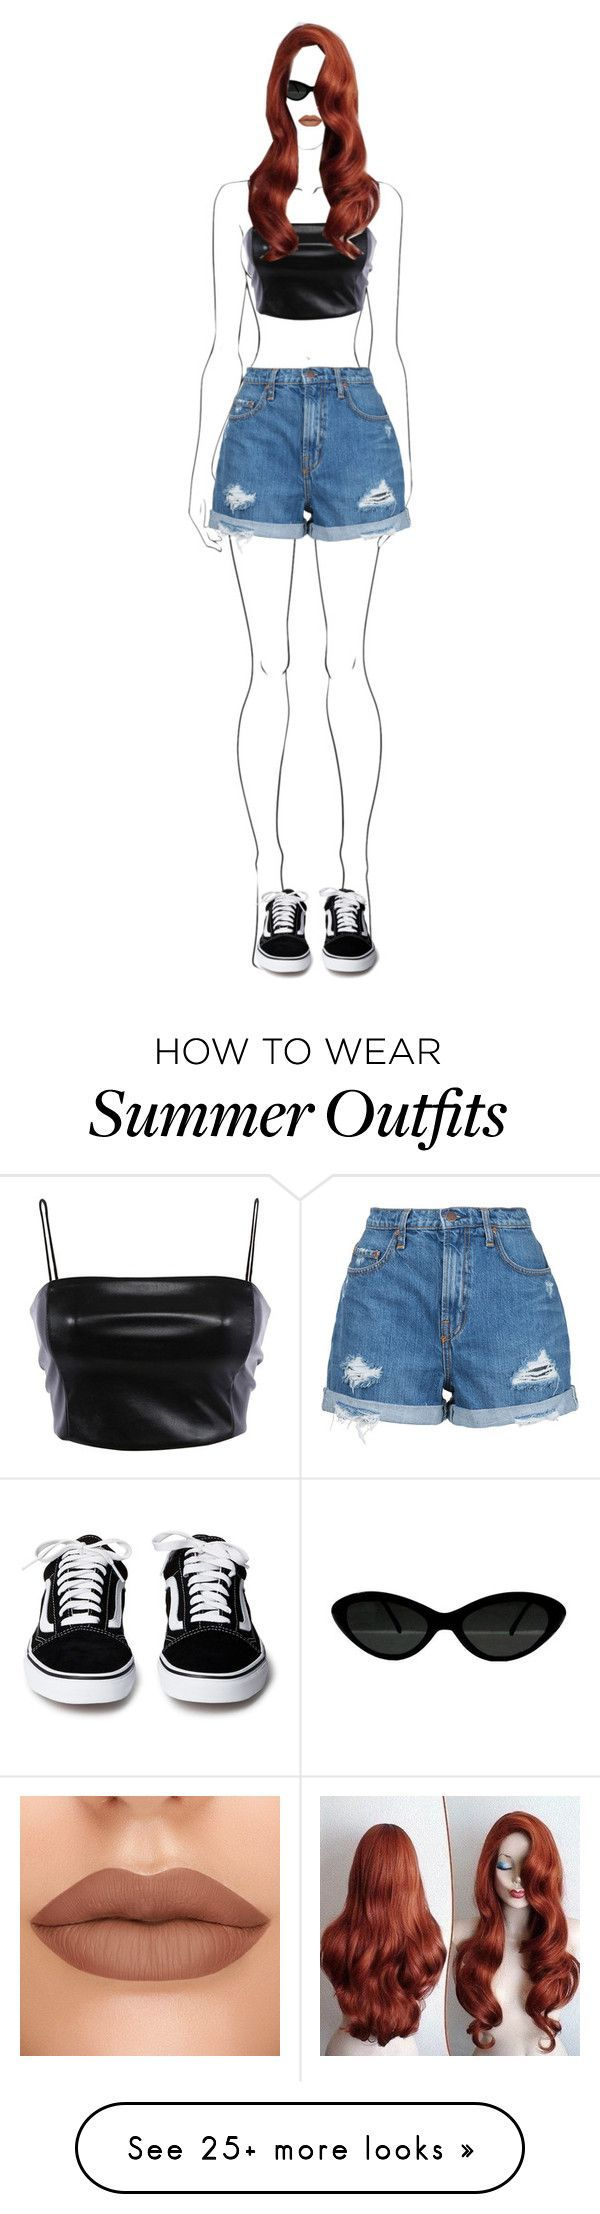 "Collection Of Summer Styles    ""Cute tomboy outfit"" by natalybelle on Polyvore featuring Nobody Denim    - #Outfits  https://fashioninspire.net/fashion/outfits/summer-outfits-cute-tomboy-outfit-by-natalybelle-on-polyvore-featuring-nobody-denim/"